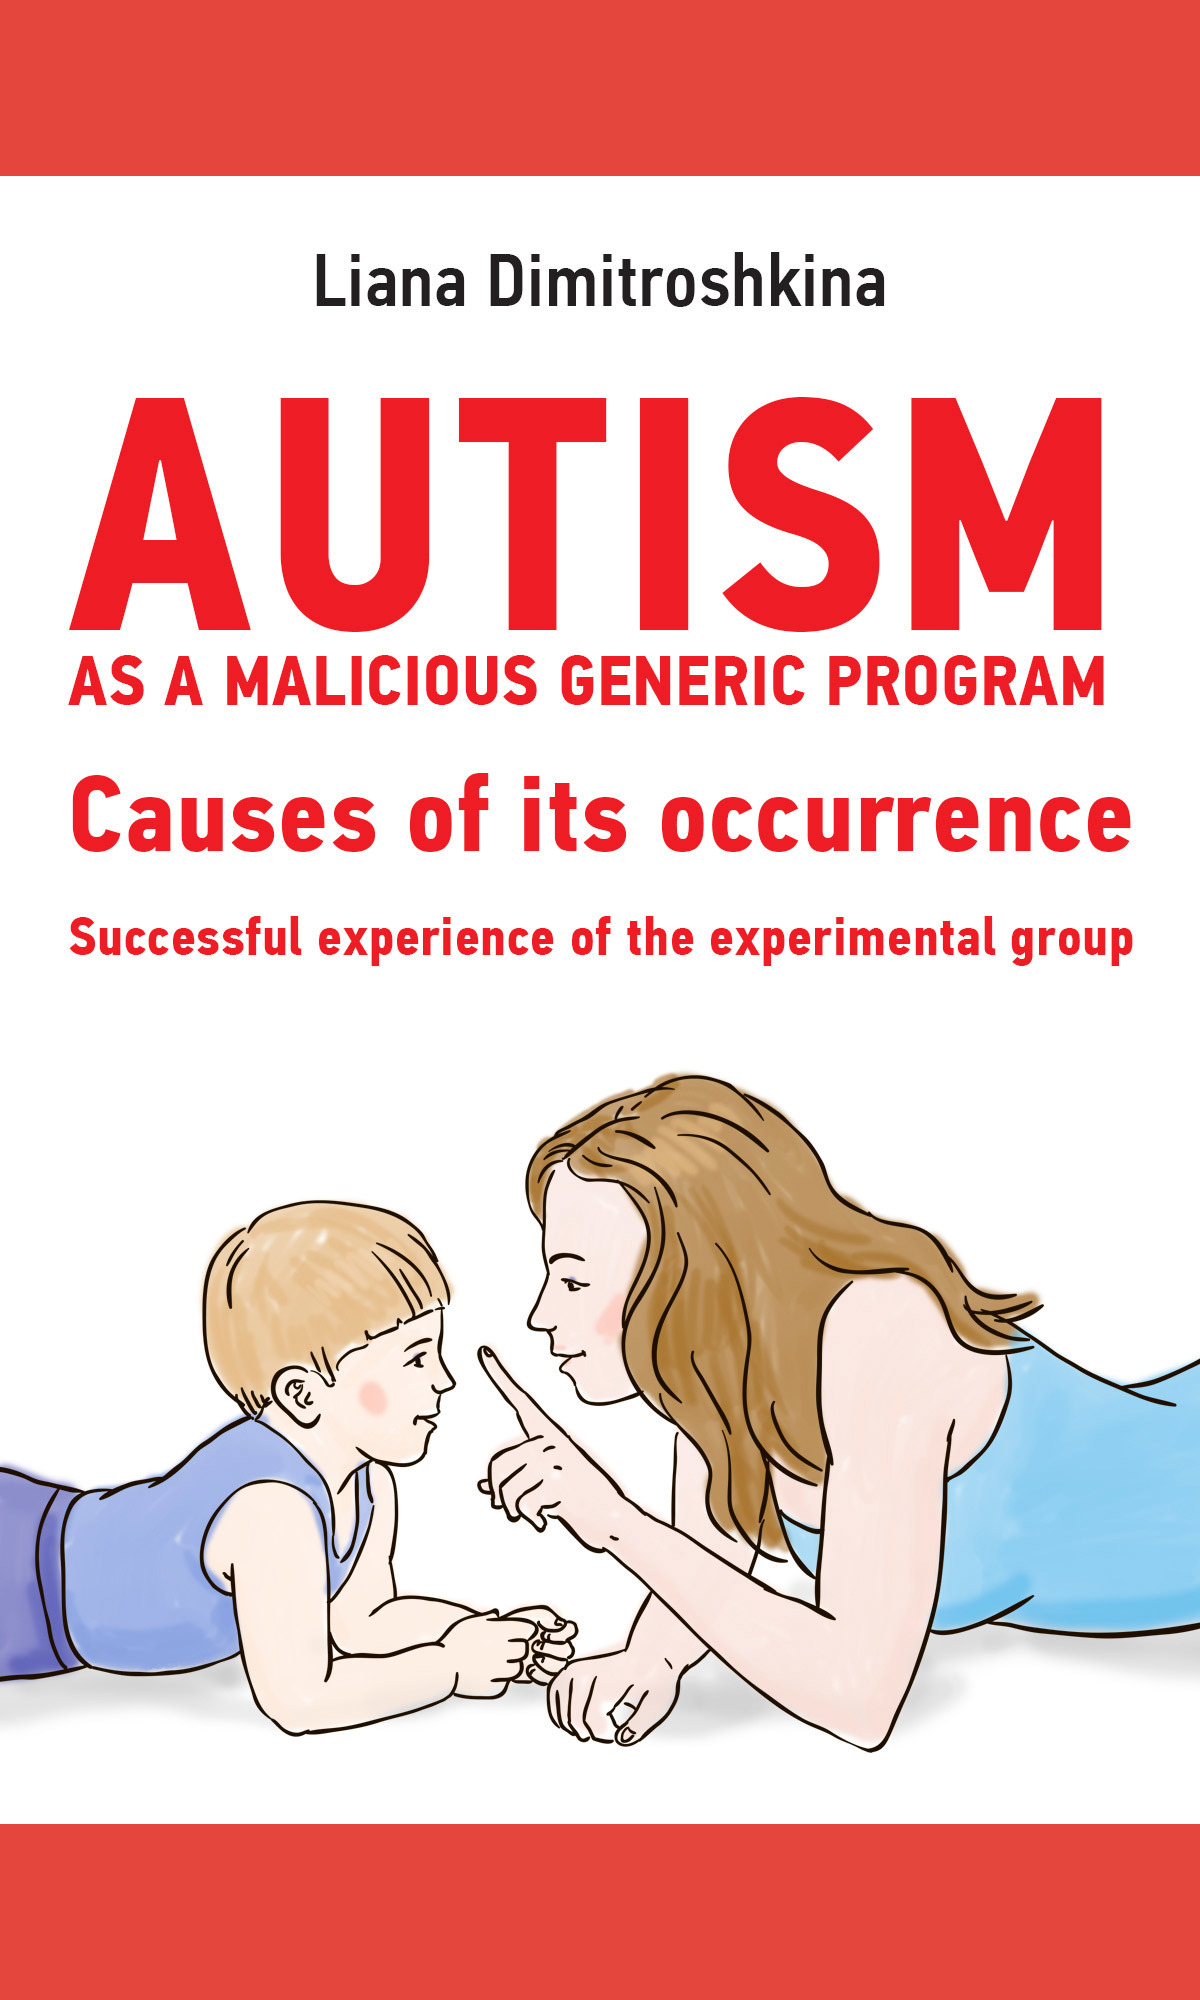 Лиана Димитрошкина - Autism as a malicious generic program. Causes of its occurrence. Successful experience of the experimental group